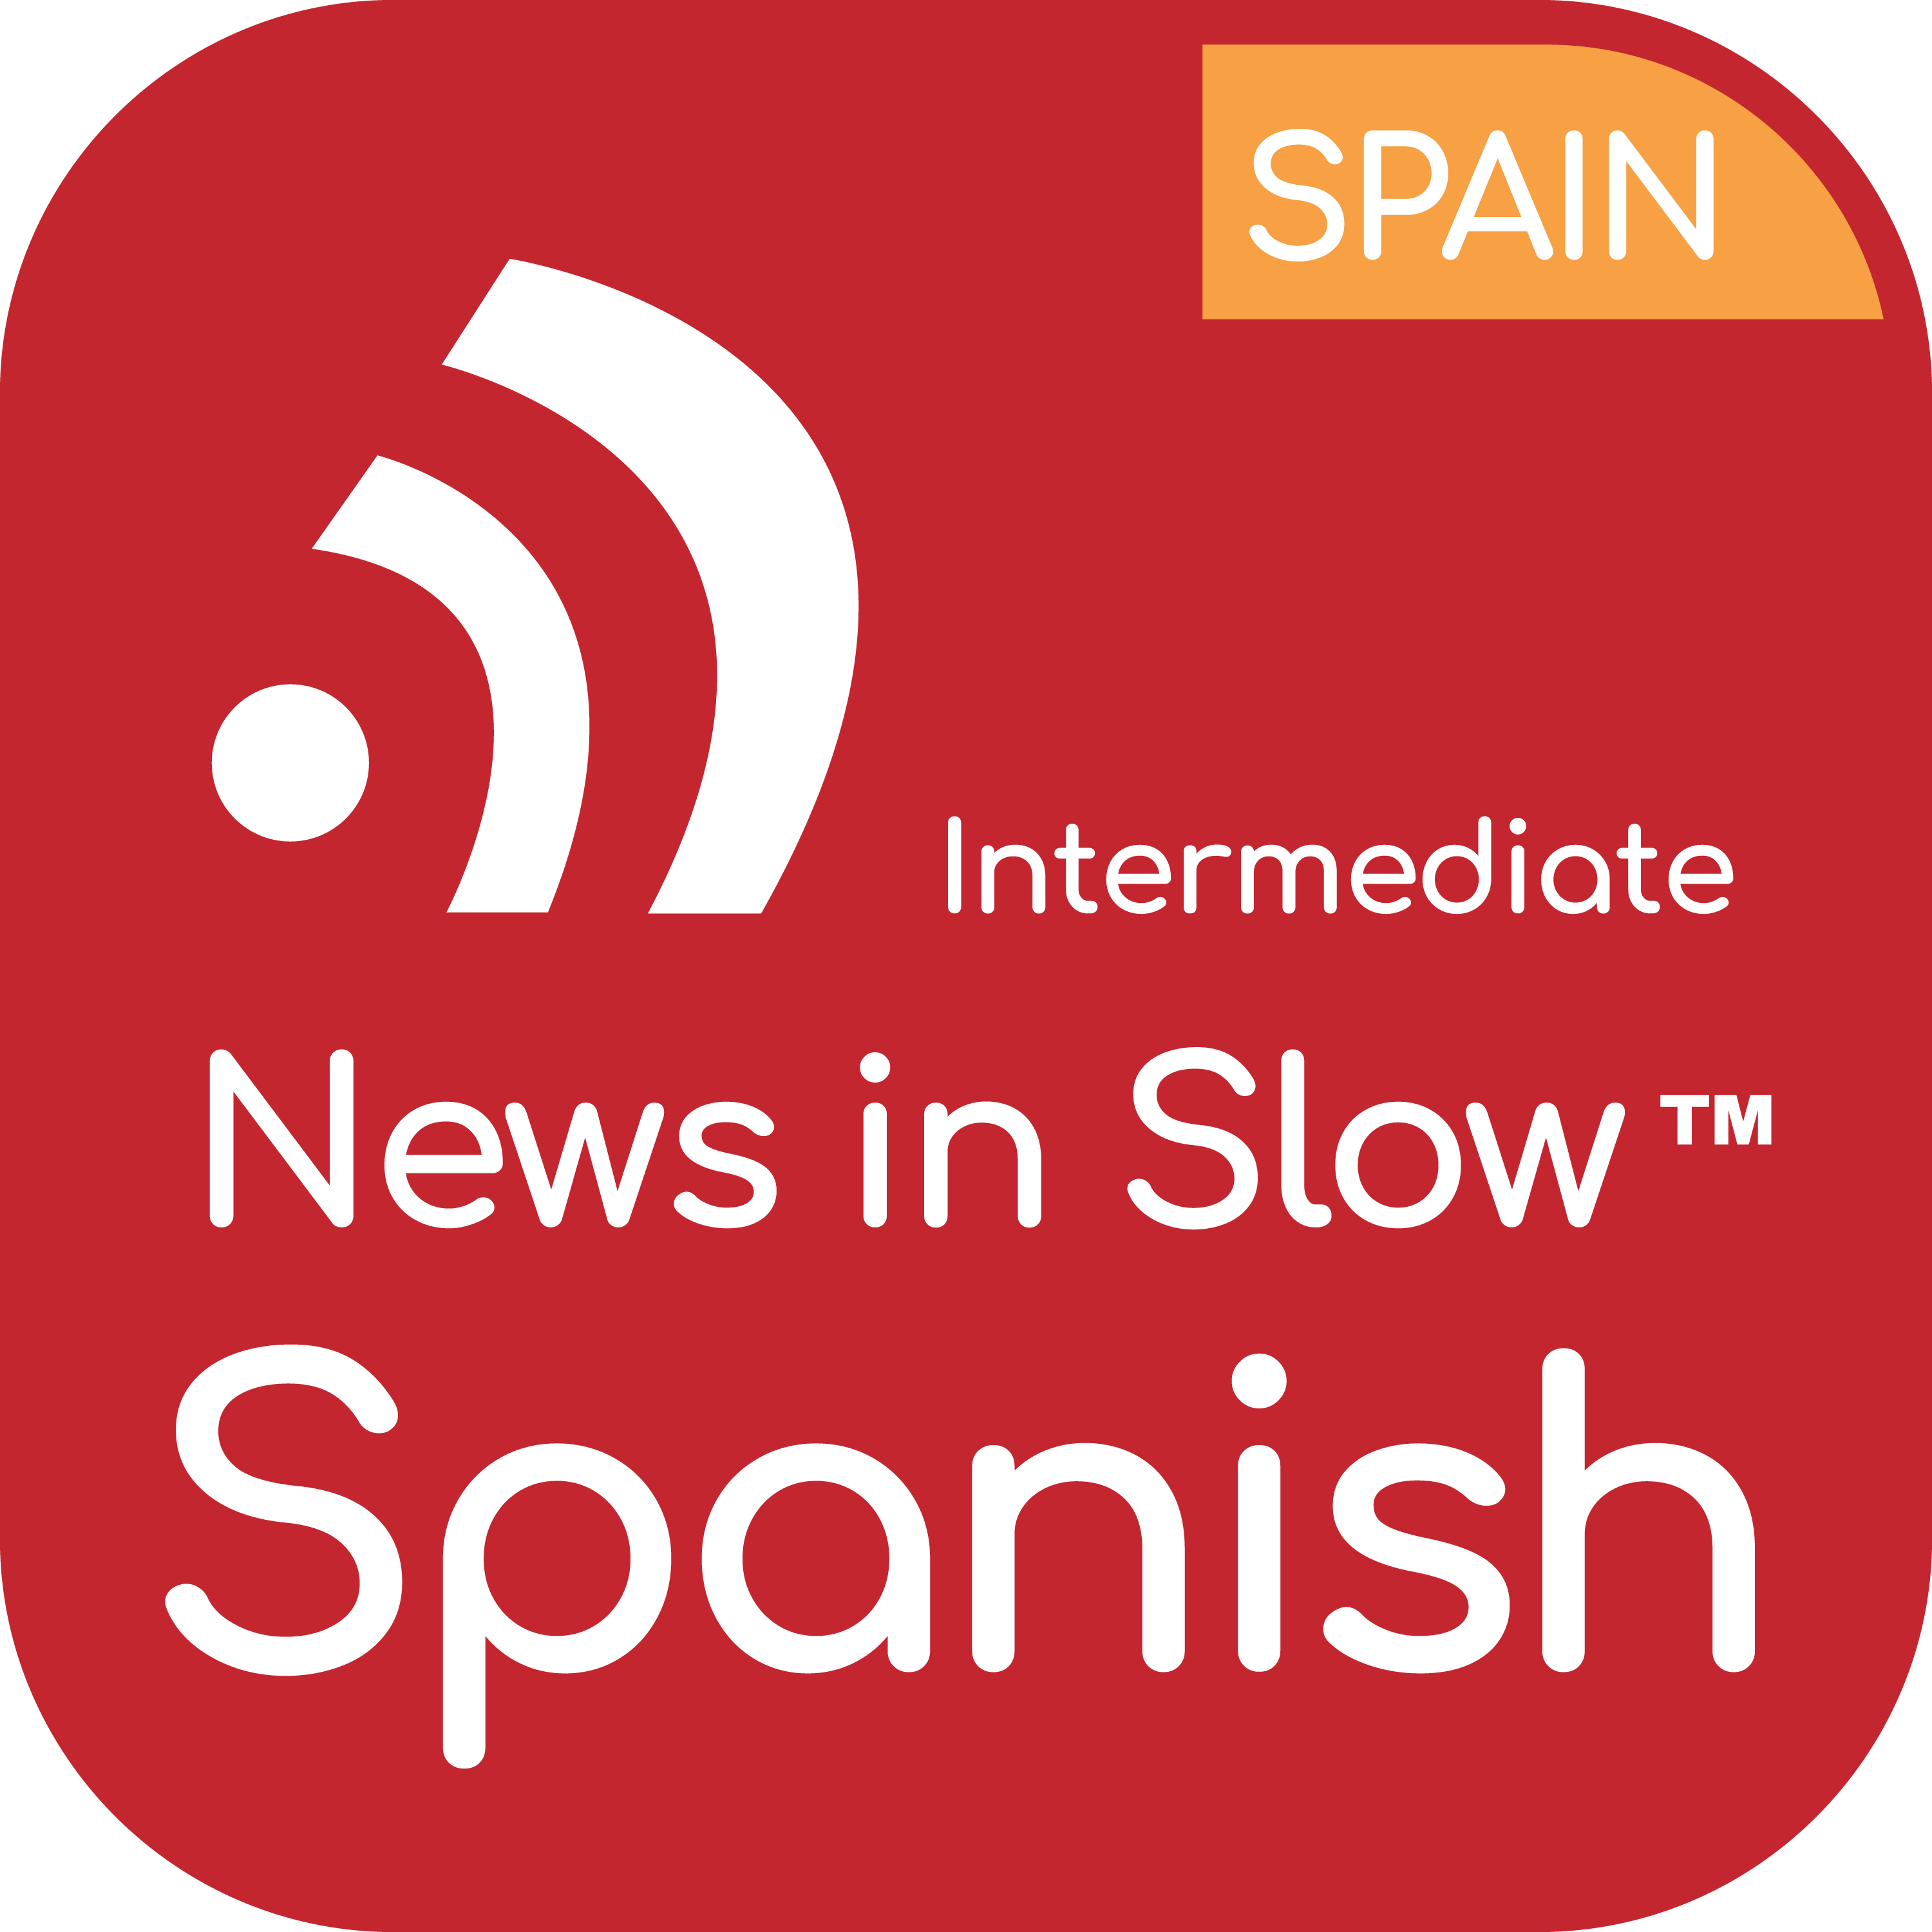 News in Slow Spanish - #610 - Study Spanish While Listening to the News